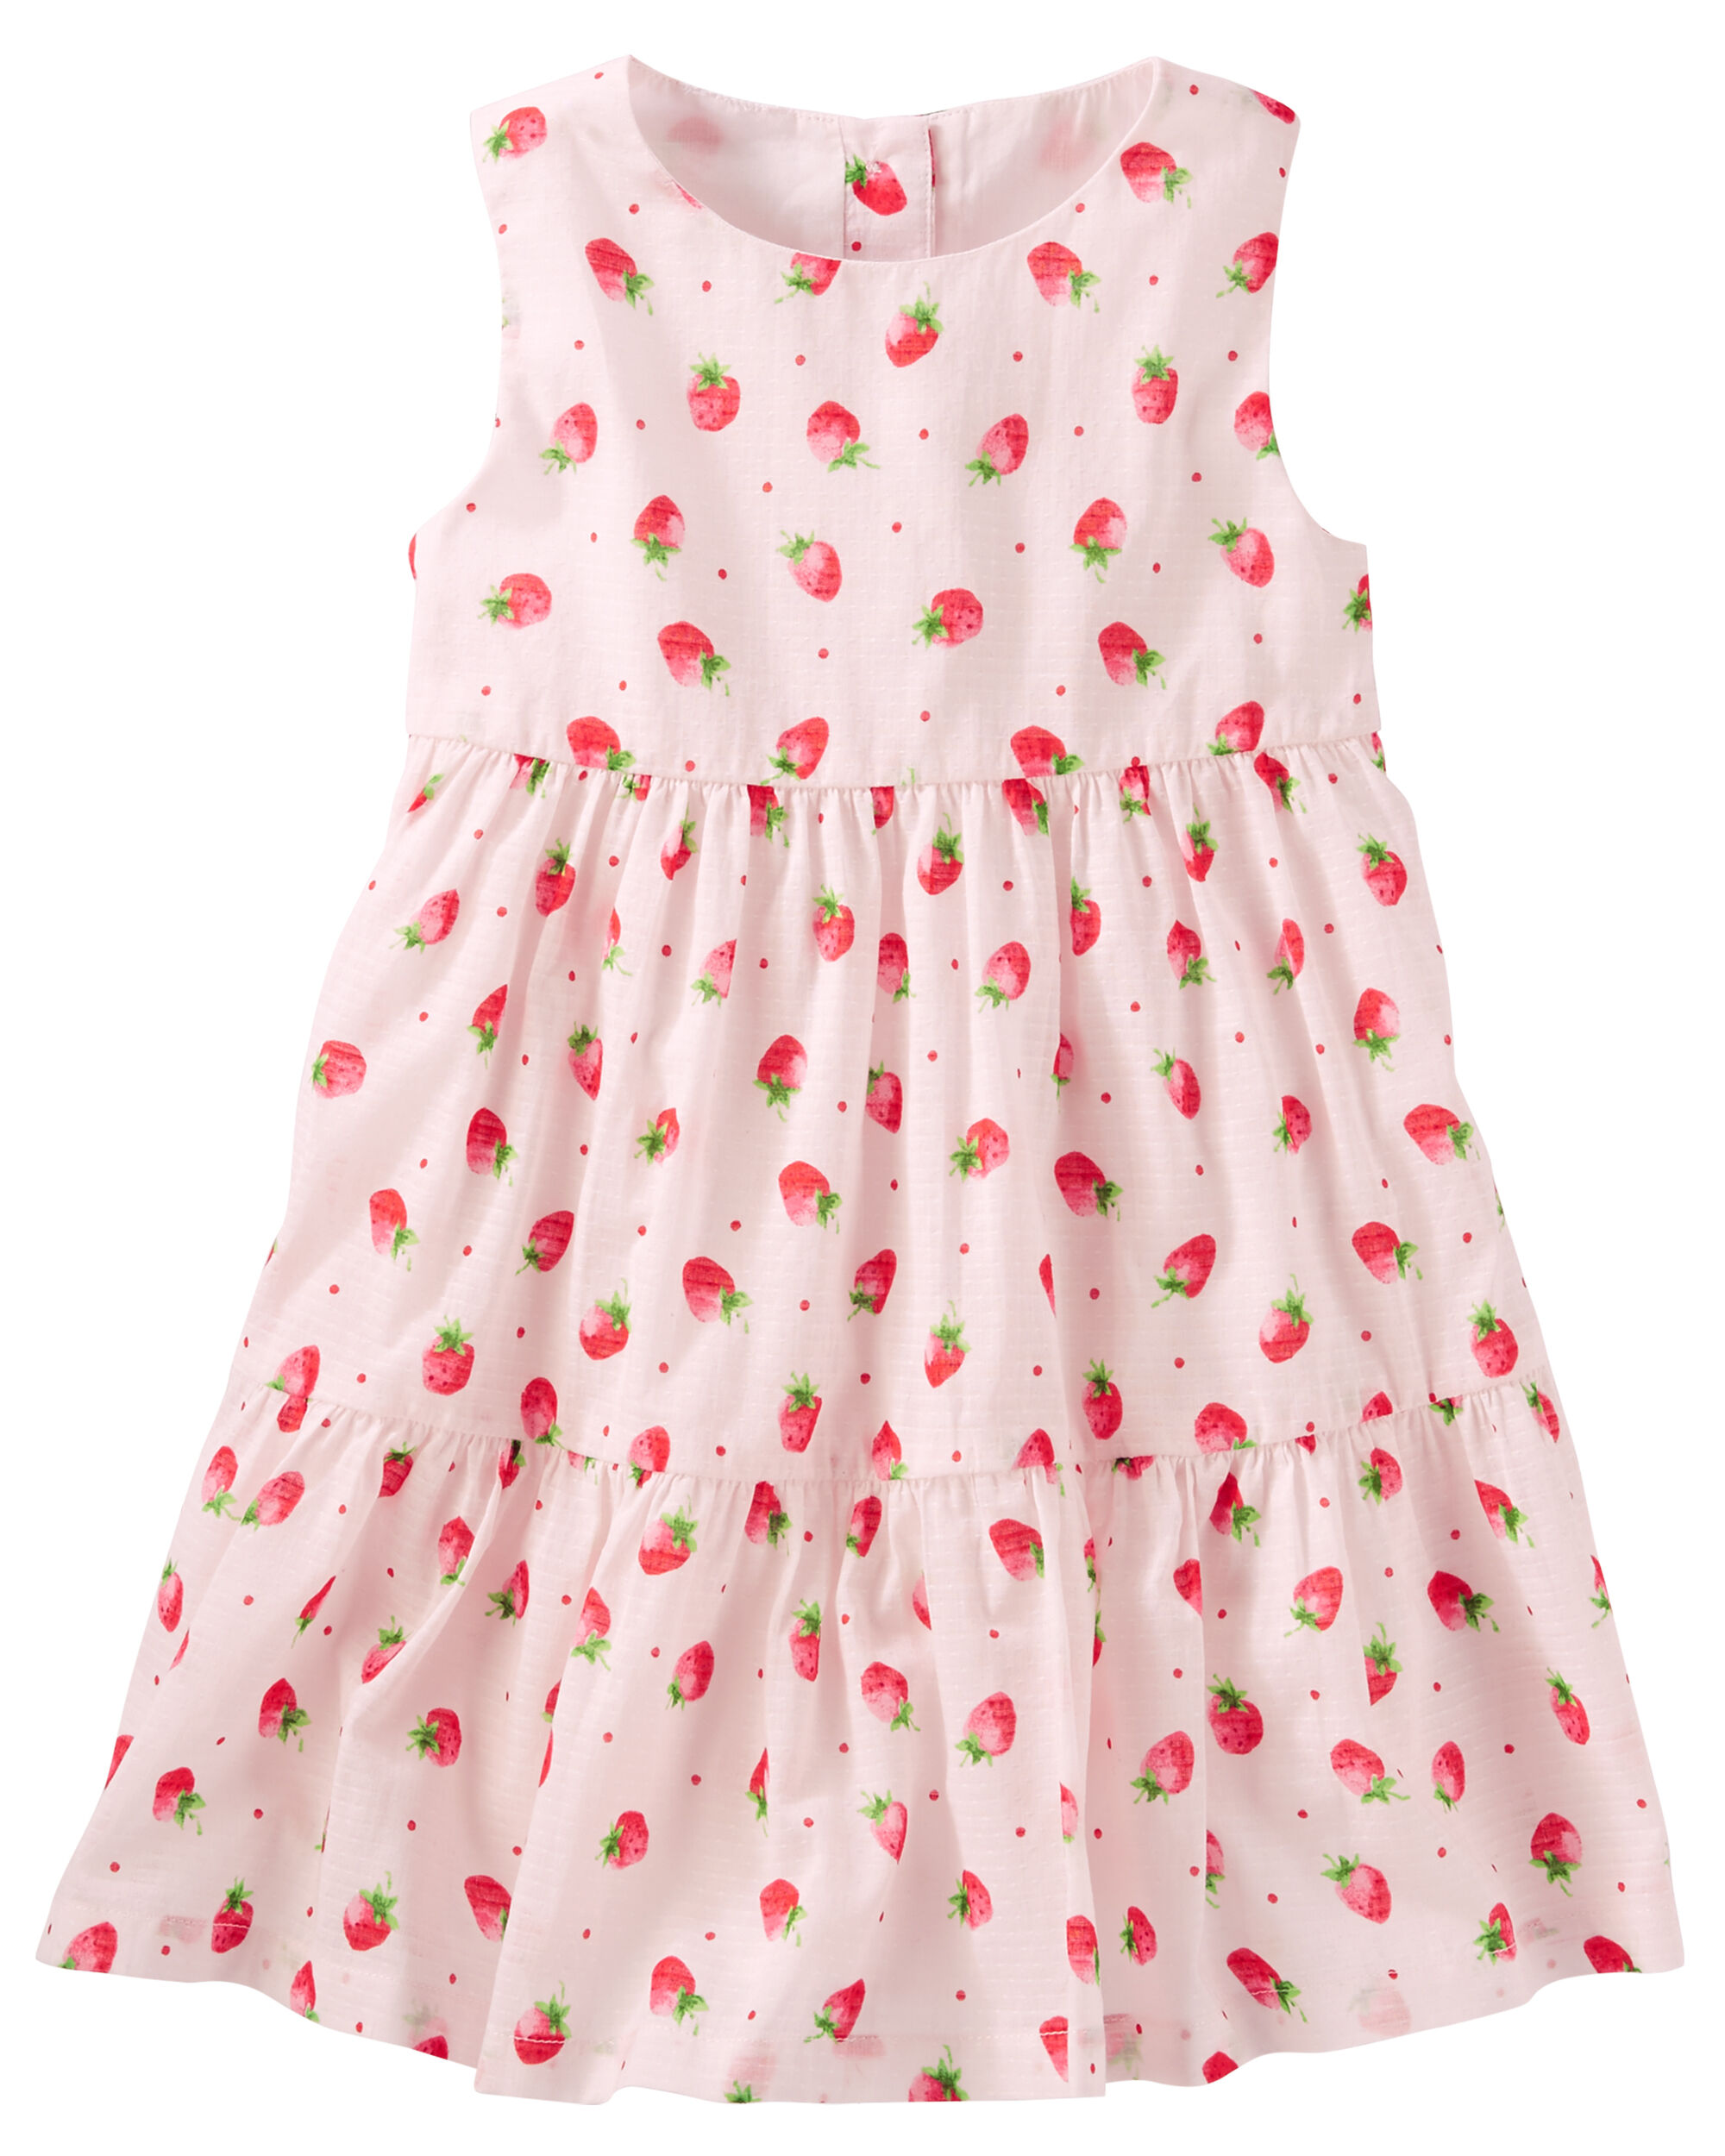 Tiered Ruffle Strawberry Print Dress